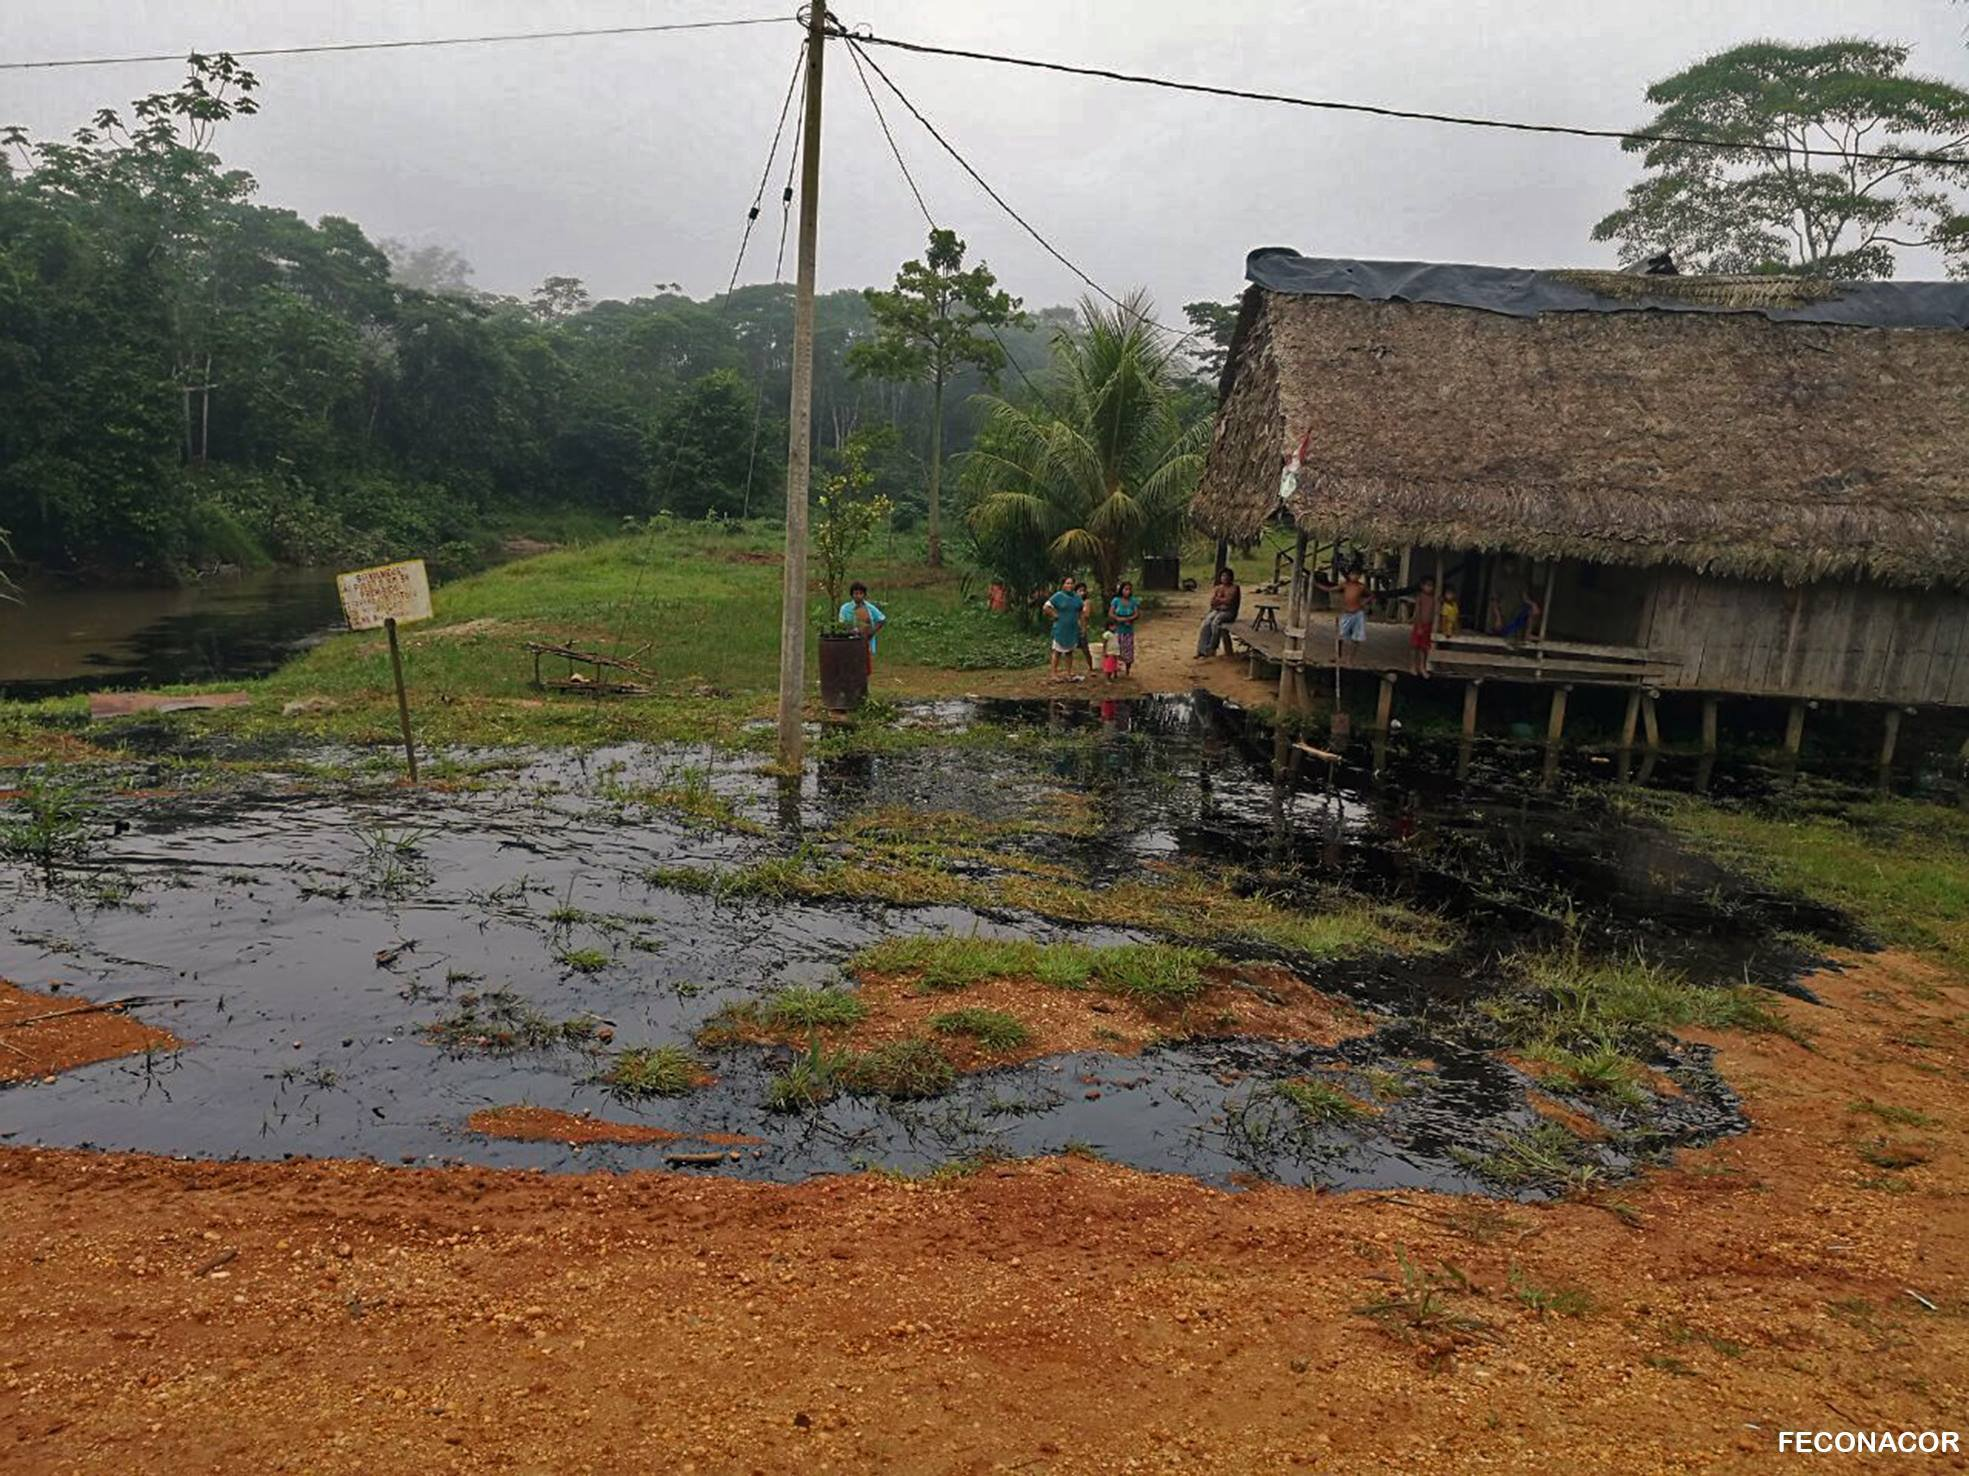 The improper maintenance of an oil pipeline inside Block 192 caused an oil spill in February 2018 in the Achuar community of Nueva Nazareth inside the Corrientes river basin.